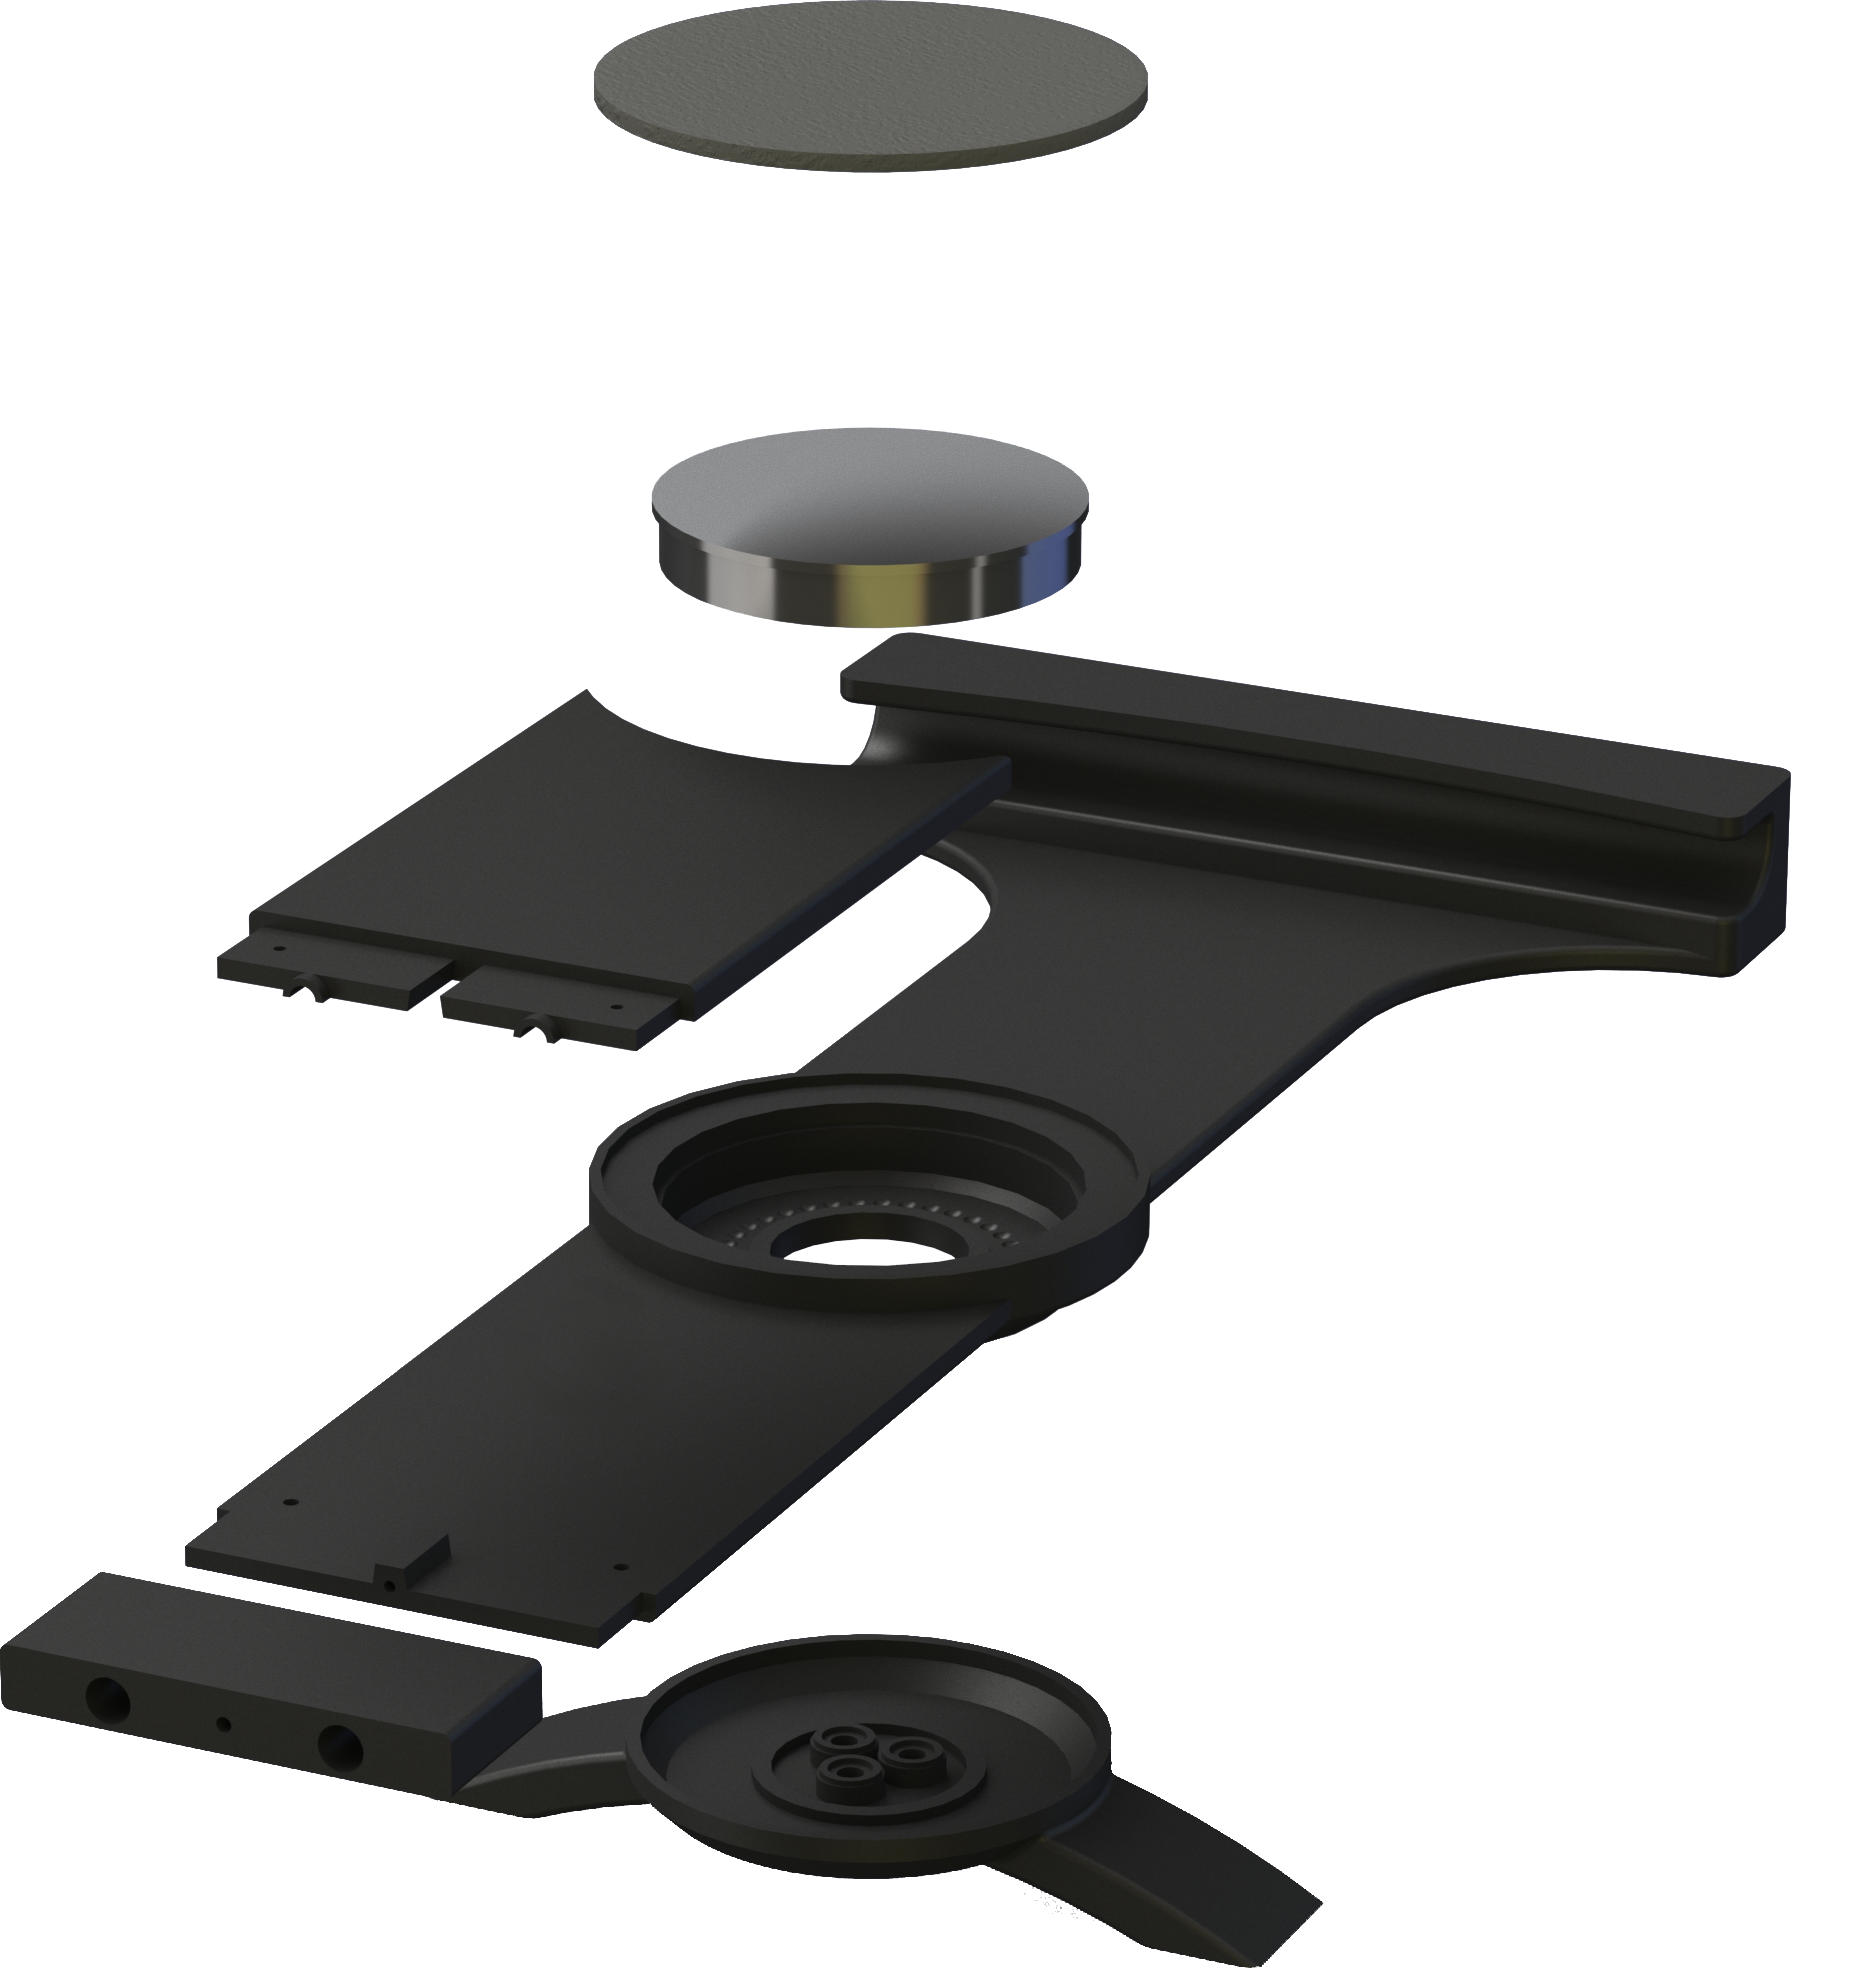 Civil aviation kneeboard CAD model exploded view.